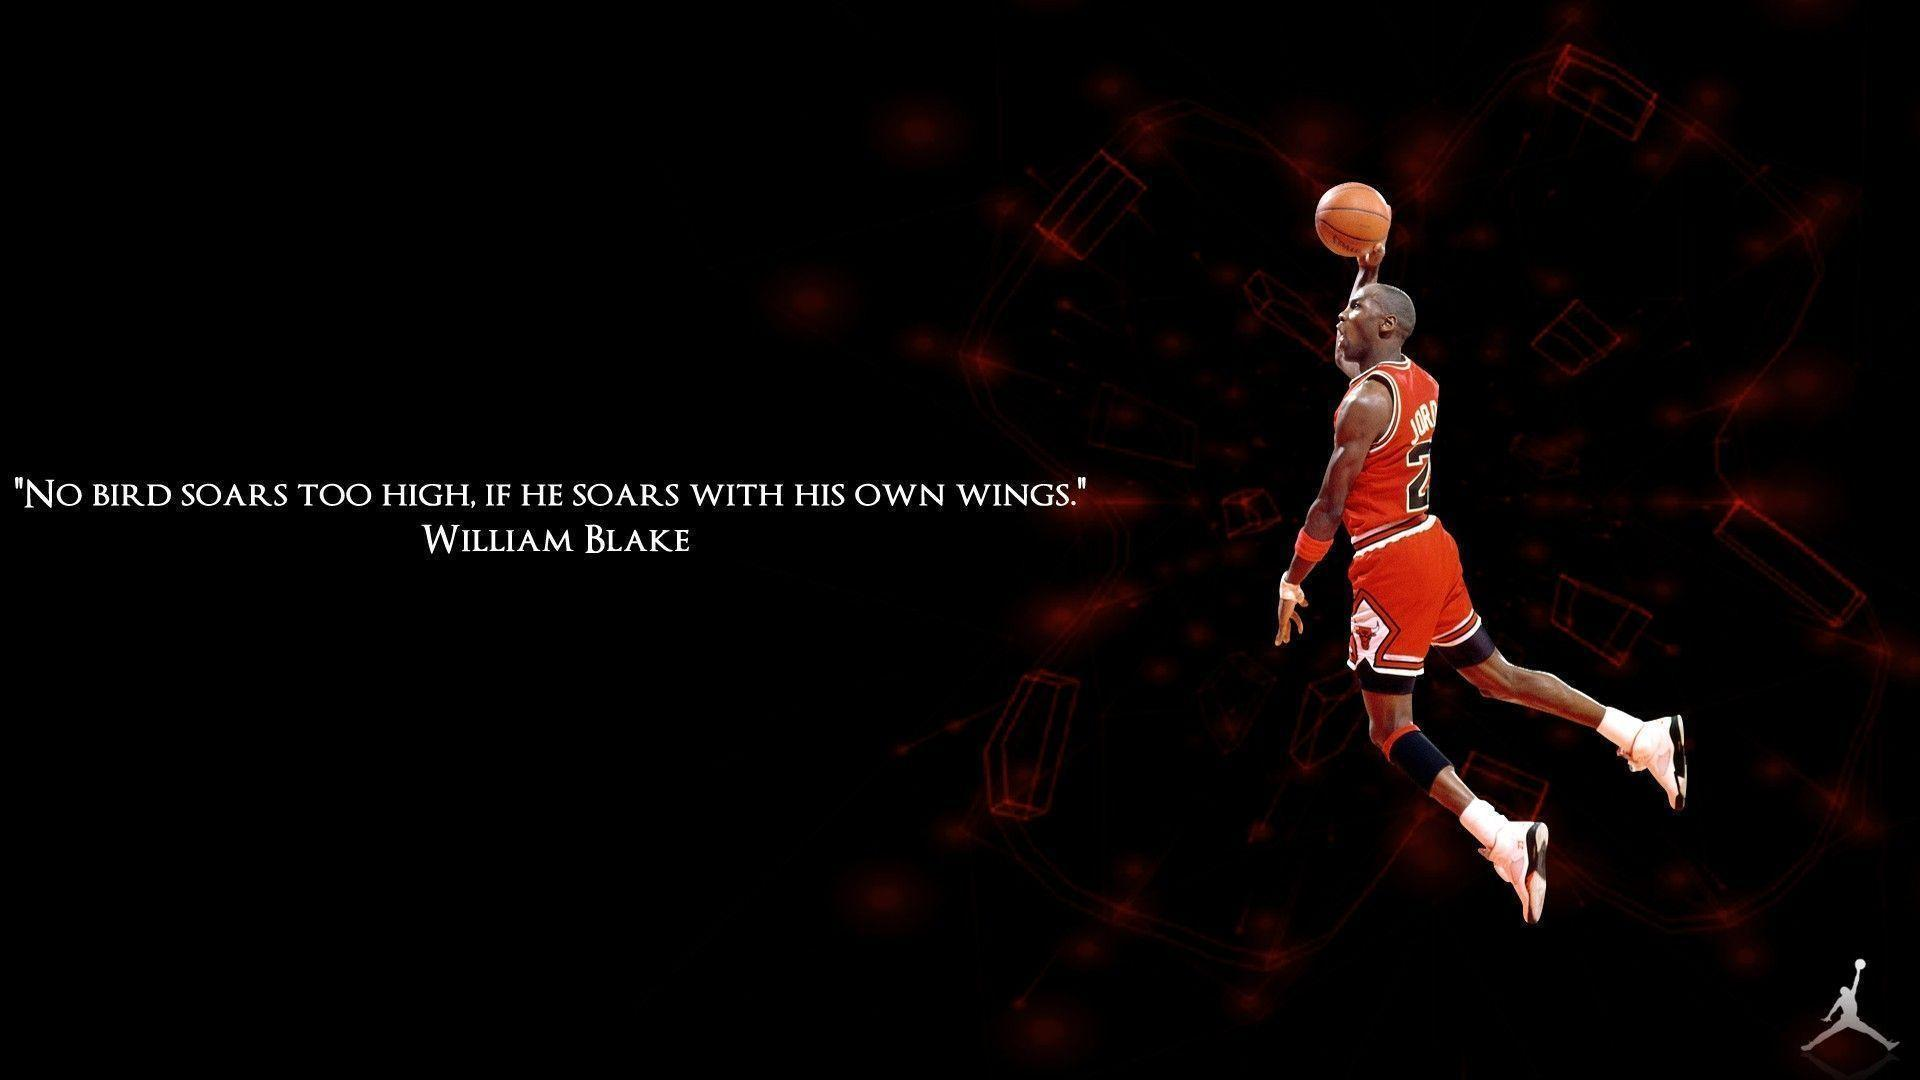 Michael Jordan Dunk Wallpapers 1920x1080